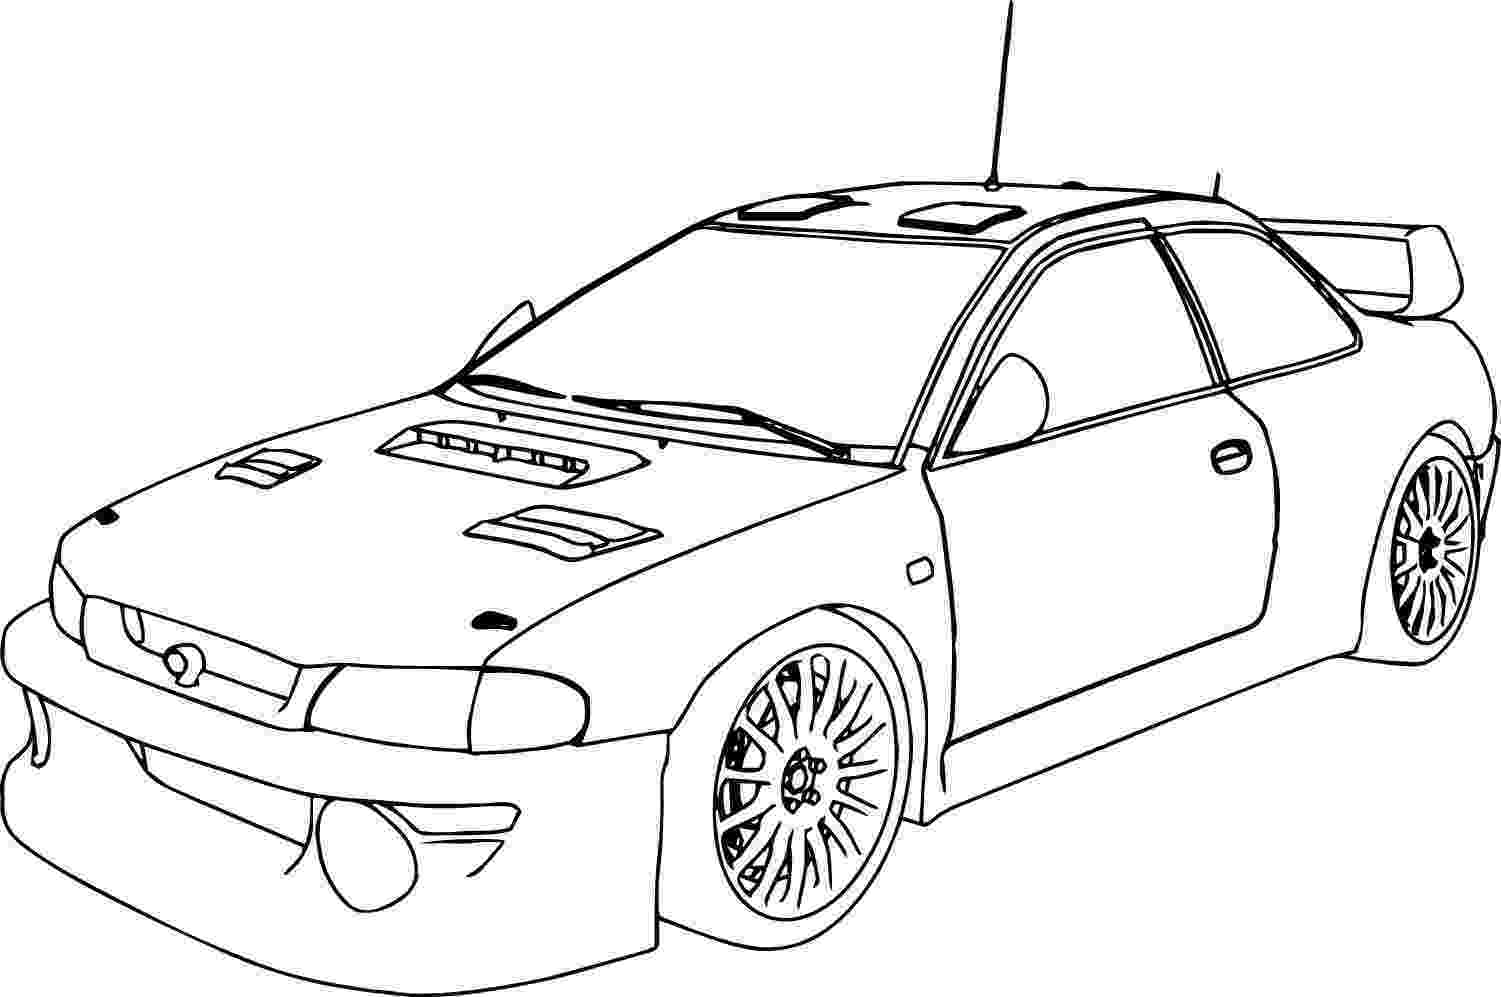 car colouring page cars coloring pages best coloring pages for kids car colouring page